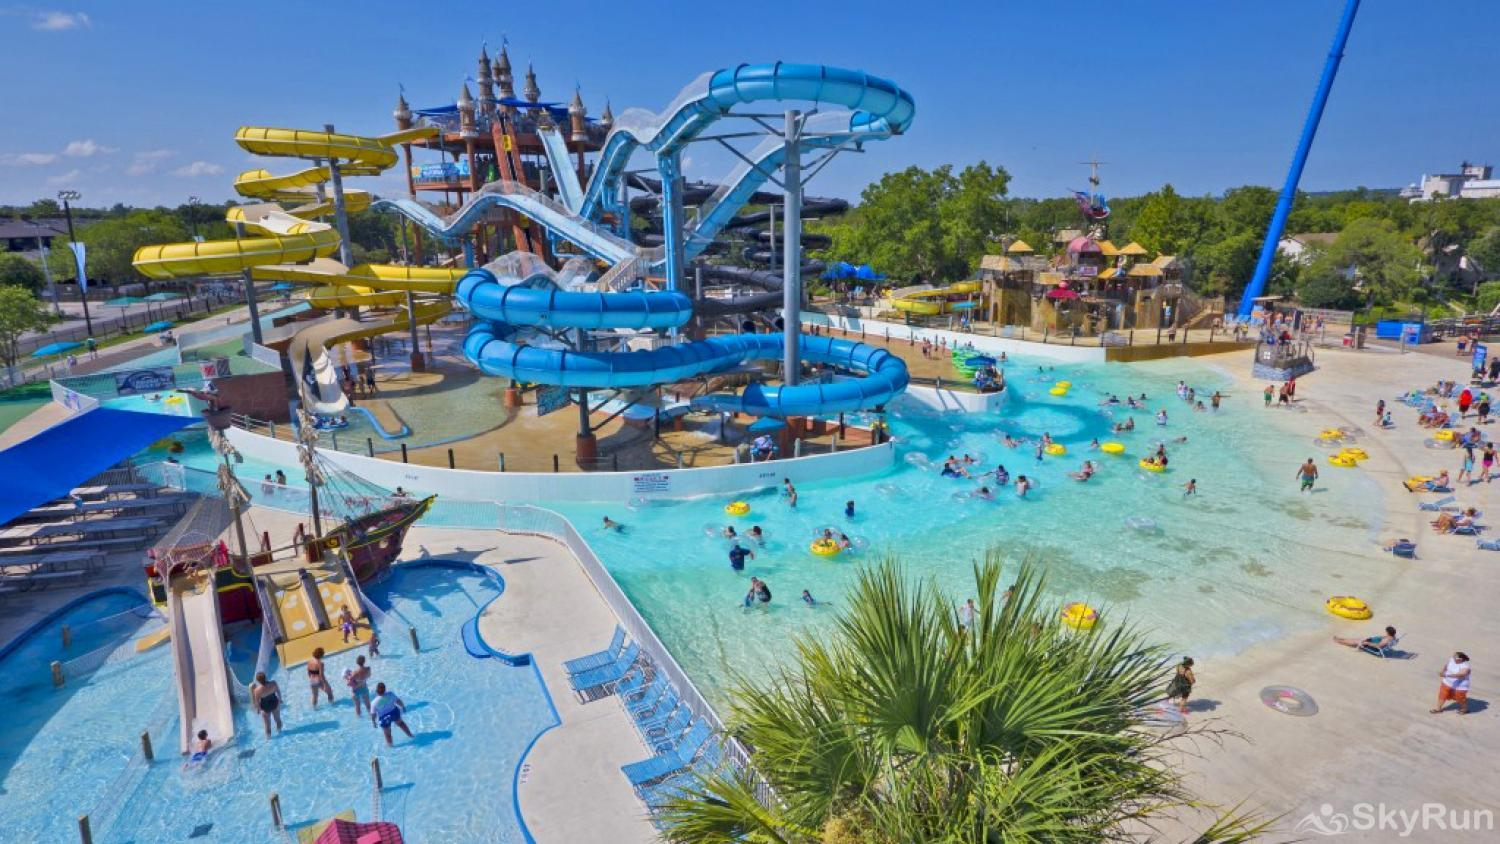 ANCHORS AWAY Schlitterbahn Waterpark in nearby New Braunfels